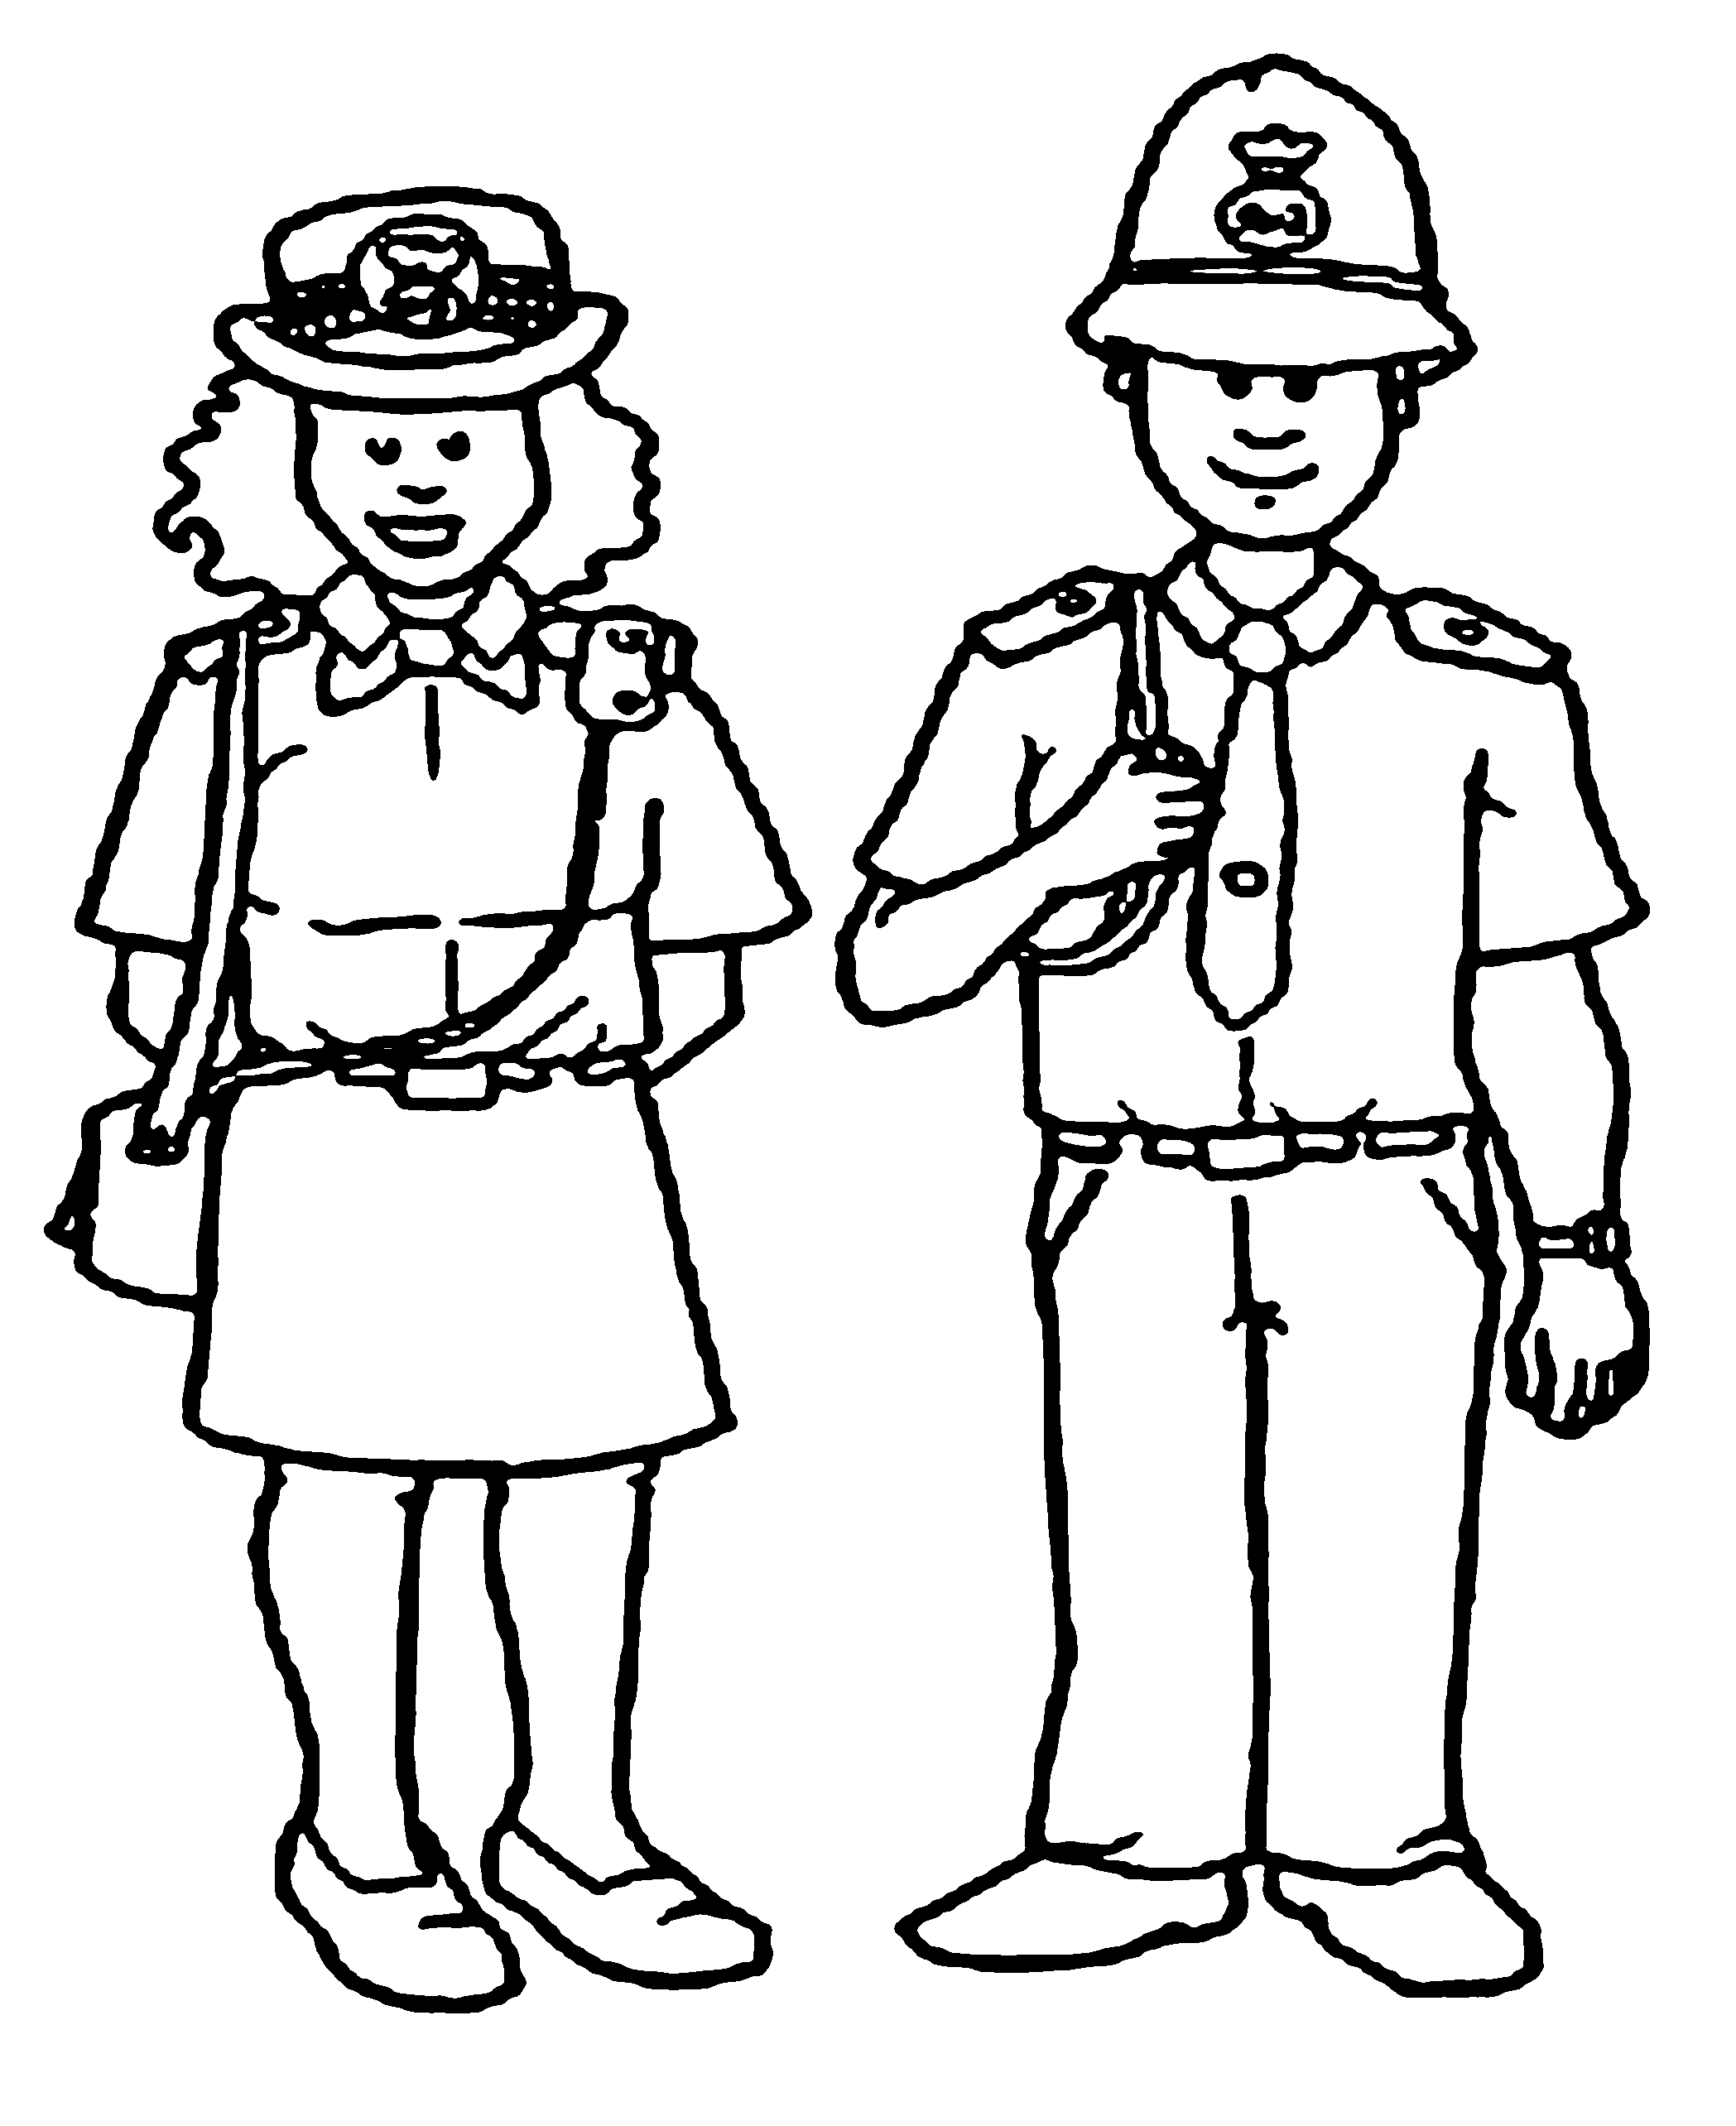 policeman coloring pages kids - photo#21